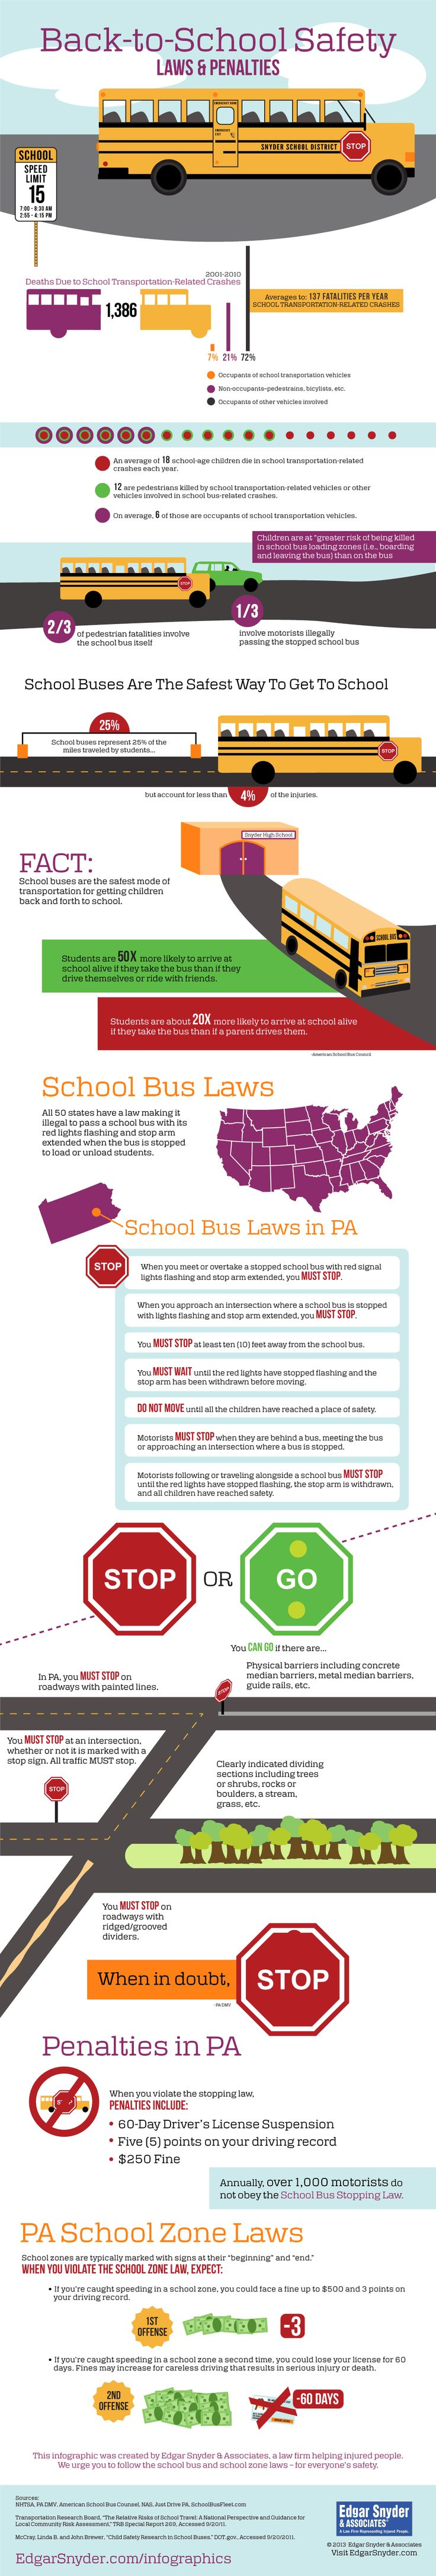 Are your kids heading back to school? Do you drive past a bus stop or a school zone during school hours? Do you know Pennsylvania's School Bus Stopping Law or penalties for violating the school zone speed limit or crosswalk law?